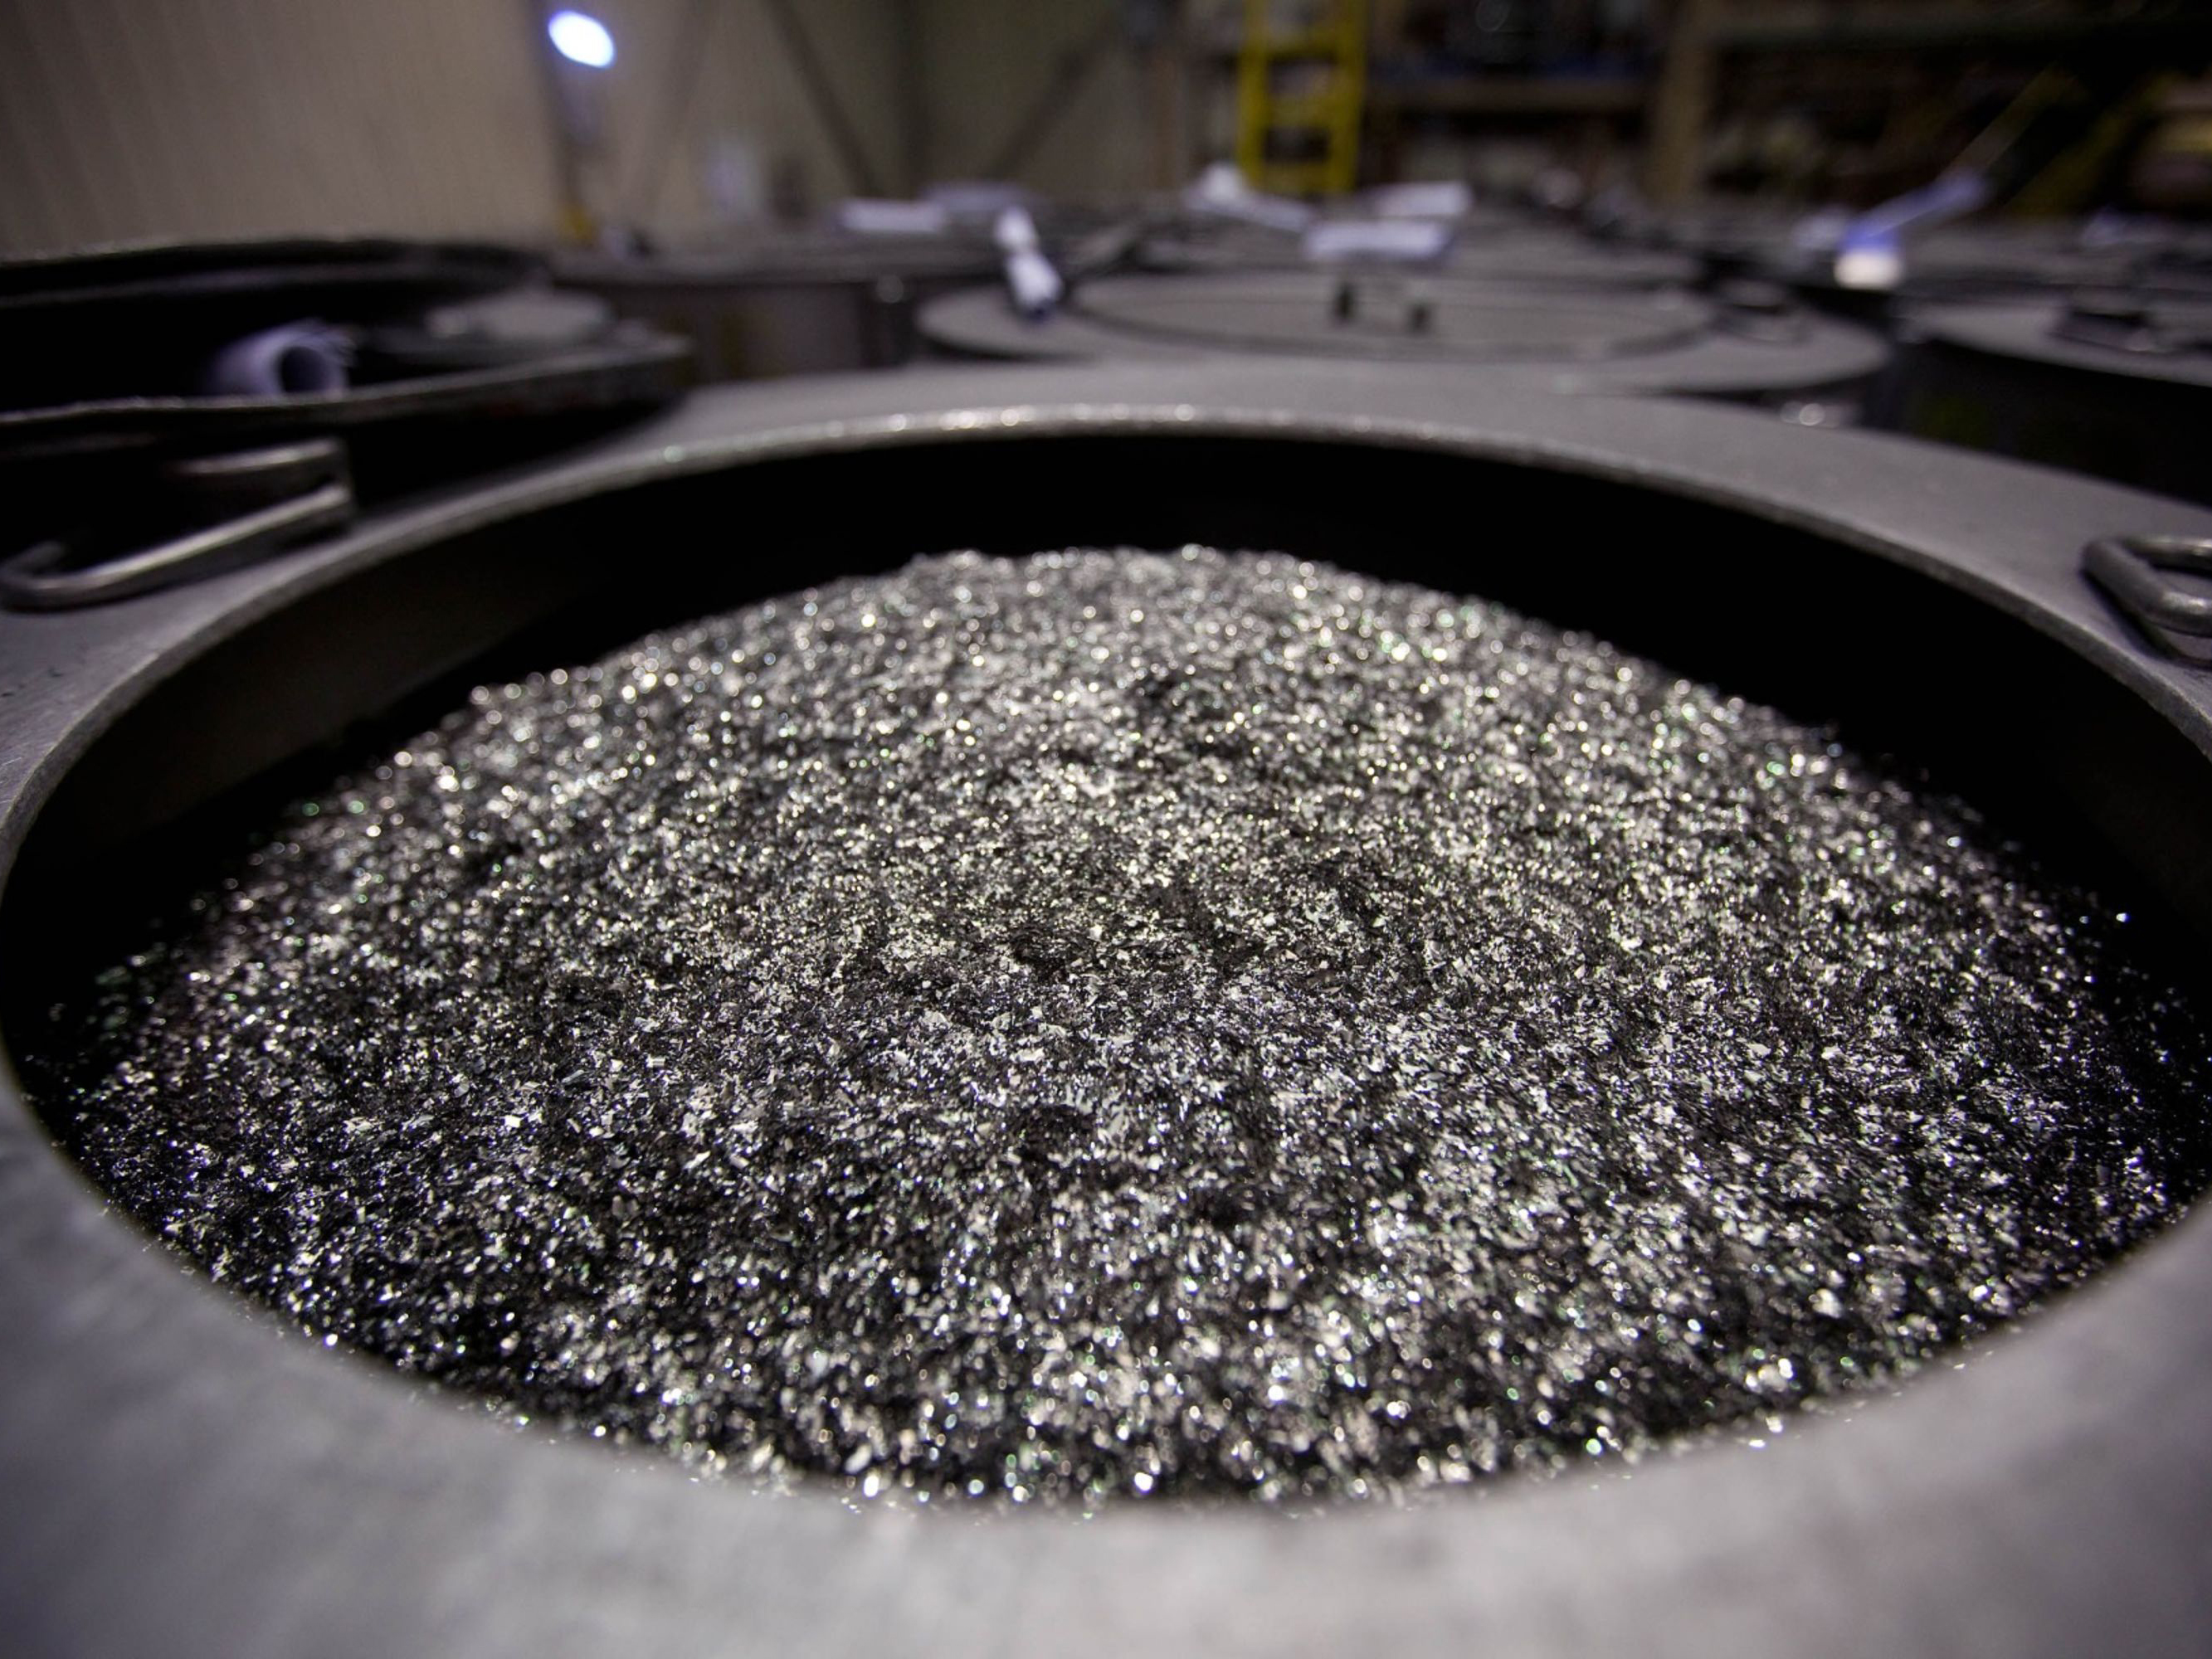 Another Attempt to Produce Rare-Earth Minerals in the U.S.